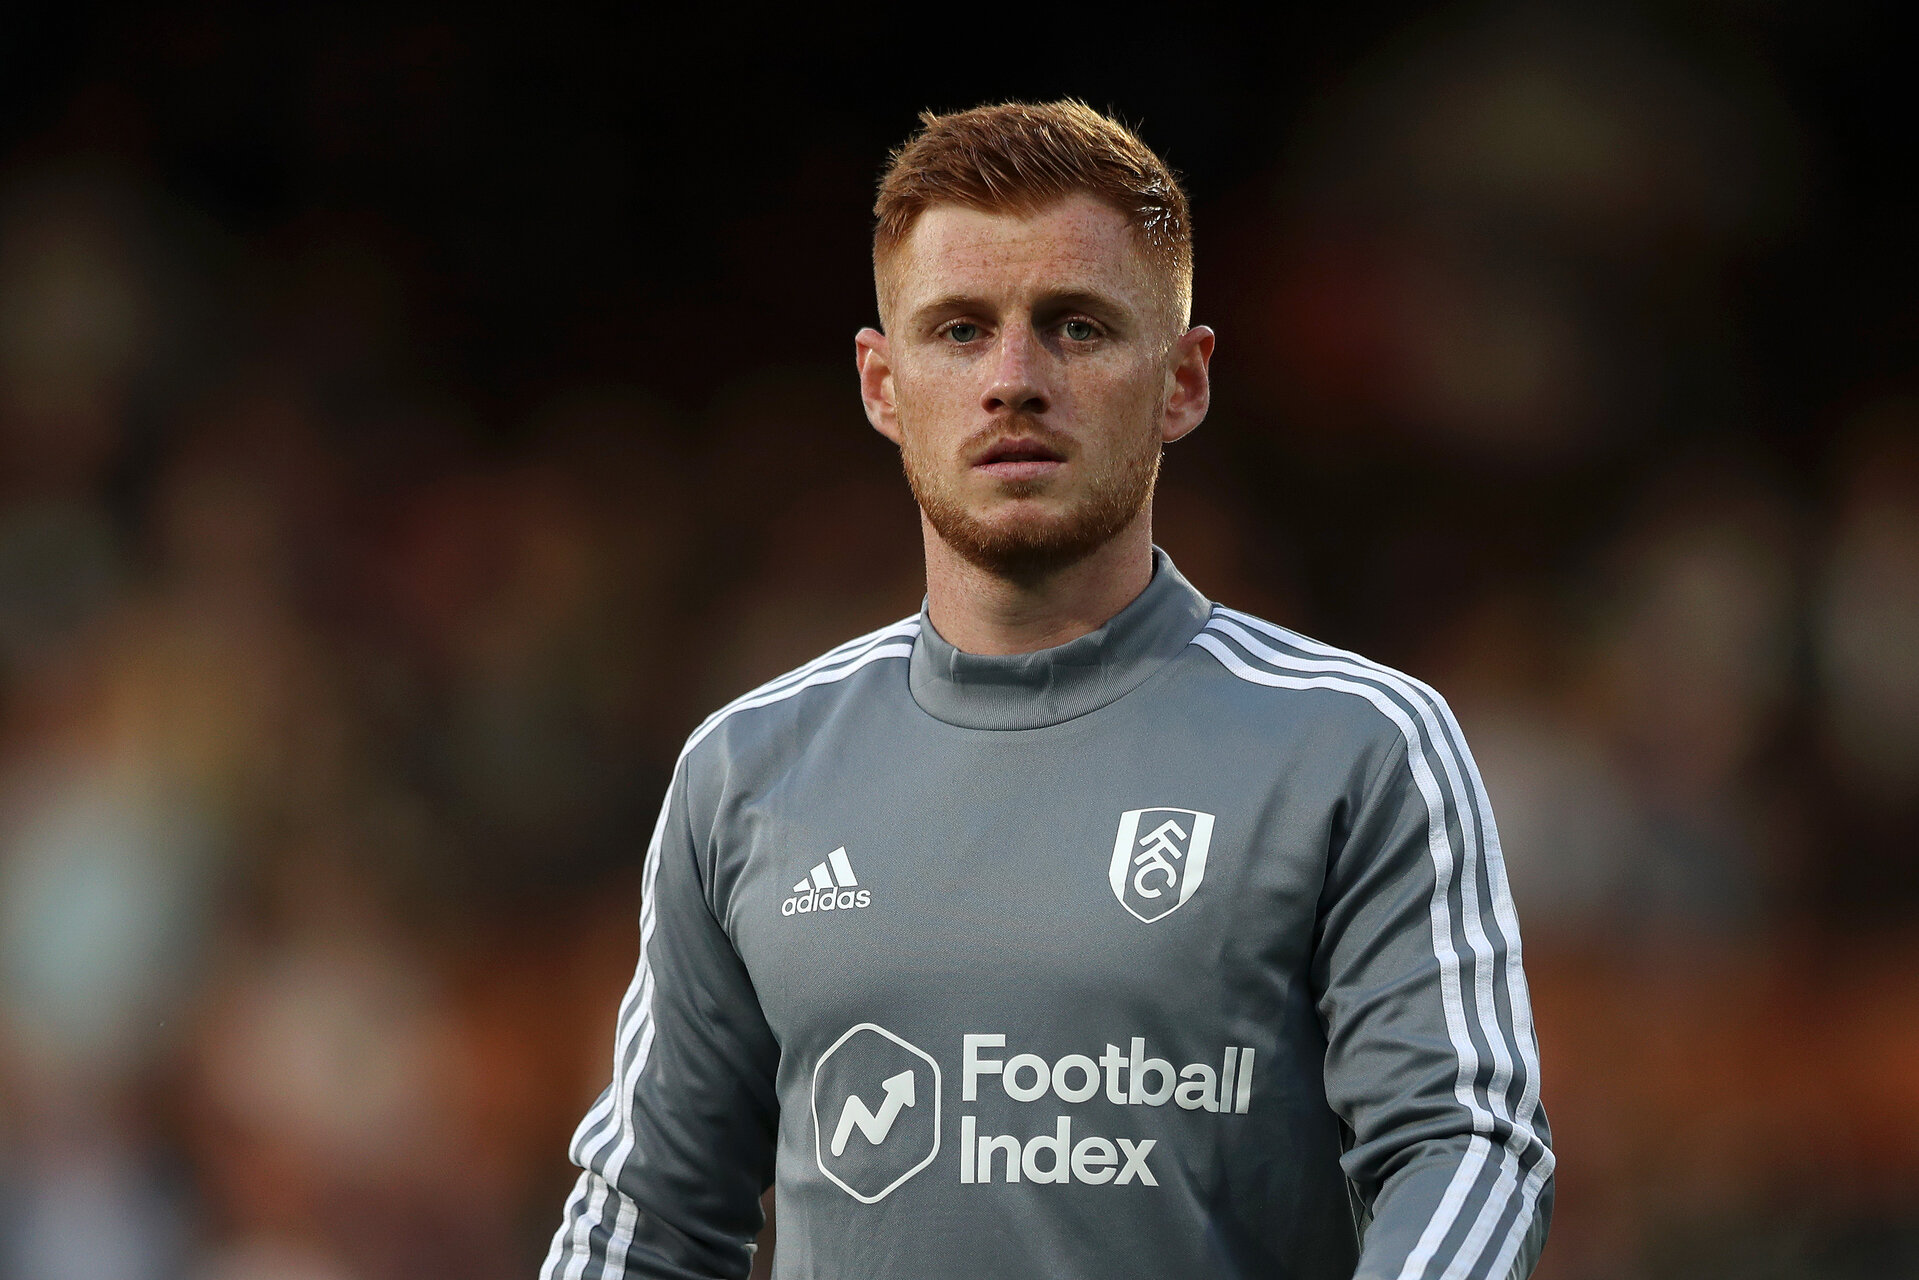 LONDON, ENGLAND - AUGUST 21:  Harrison Reed of Fulham looks on ahead of the Sky Bet Championship match between Fulham and Leeds United at Craven Cottage on August 21, 2019 in London, England. (Photo by Naomi Baker/Getty Images)